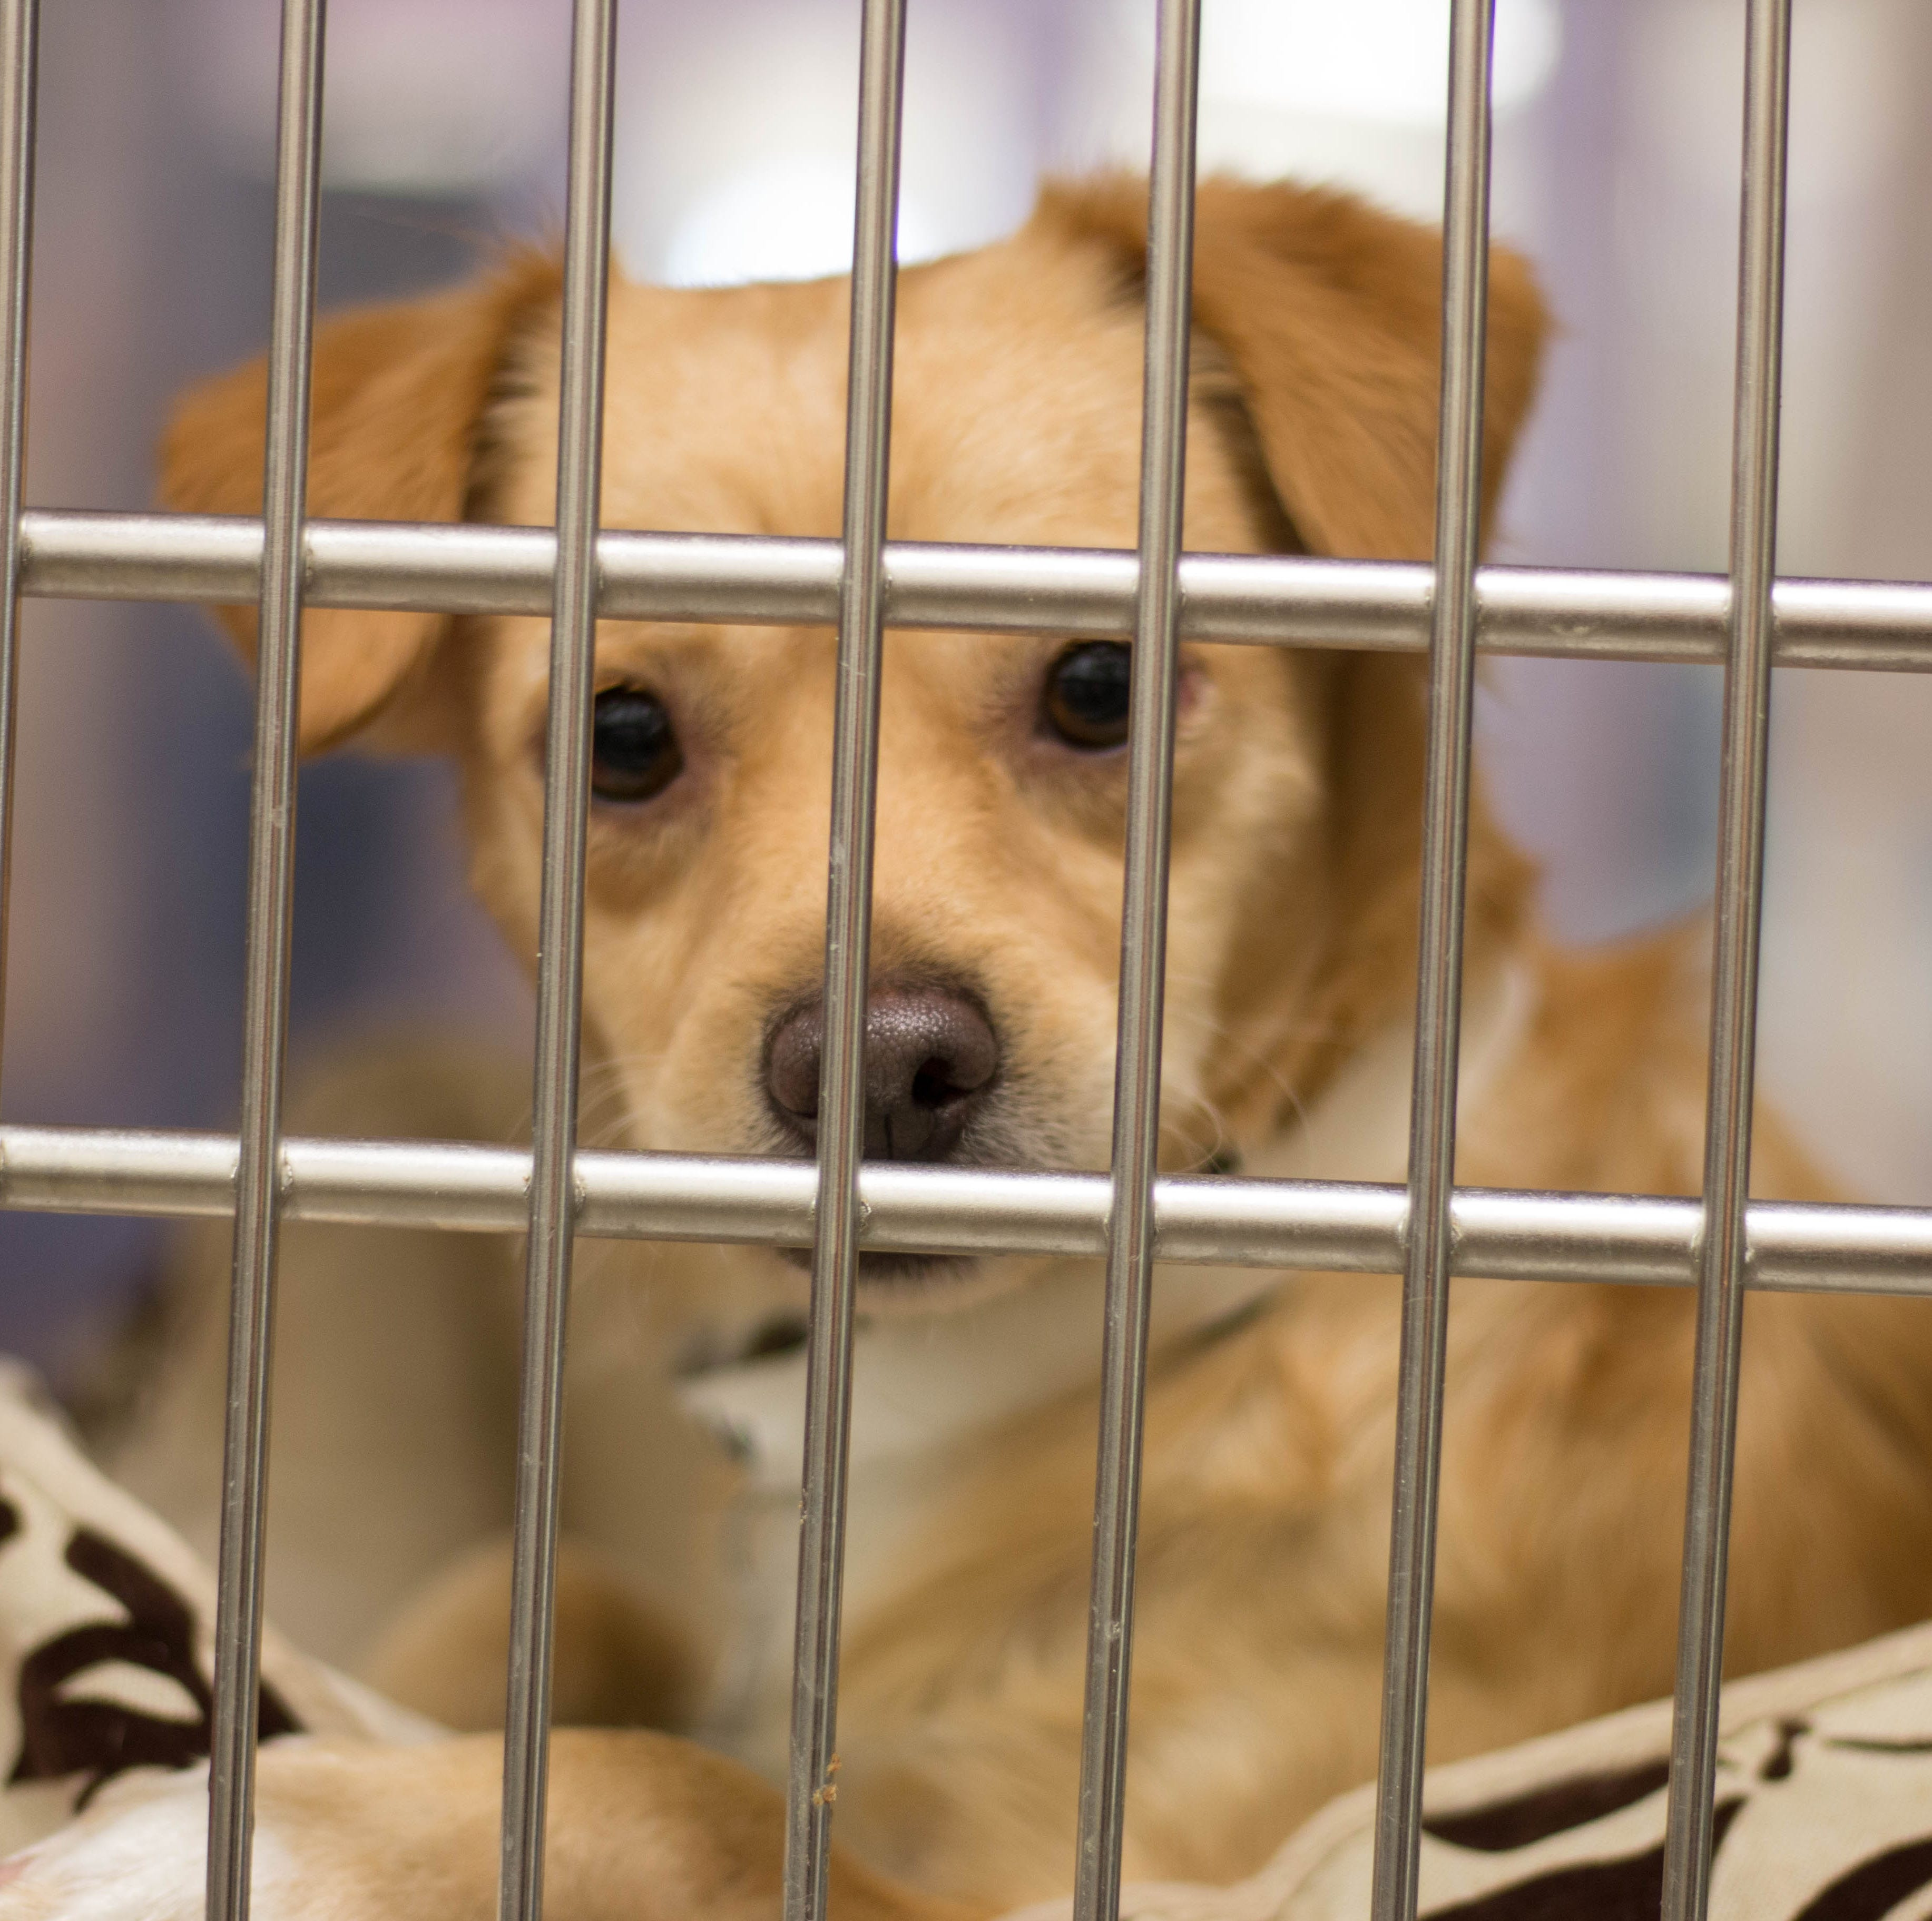 'Clear the Shelter' day: Free adult pet adoptions at Maricopa County shelters in Phoenix and Mesa